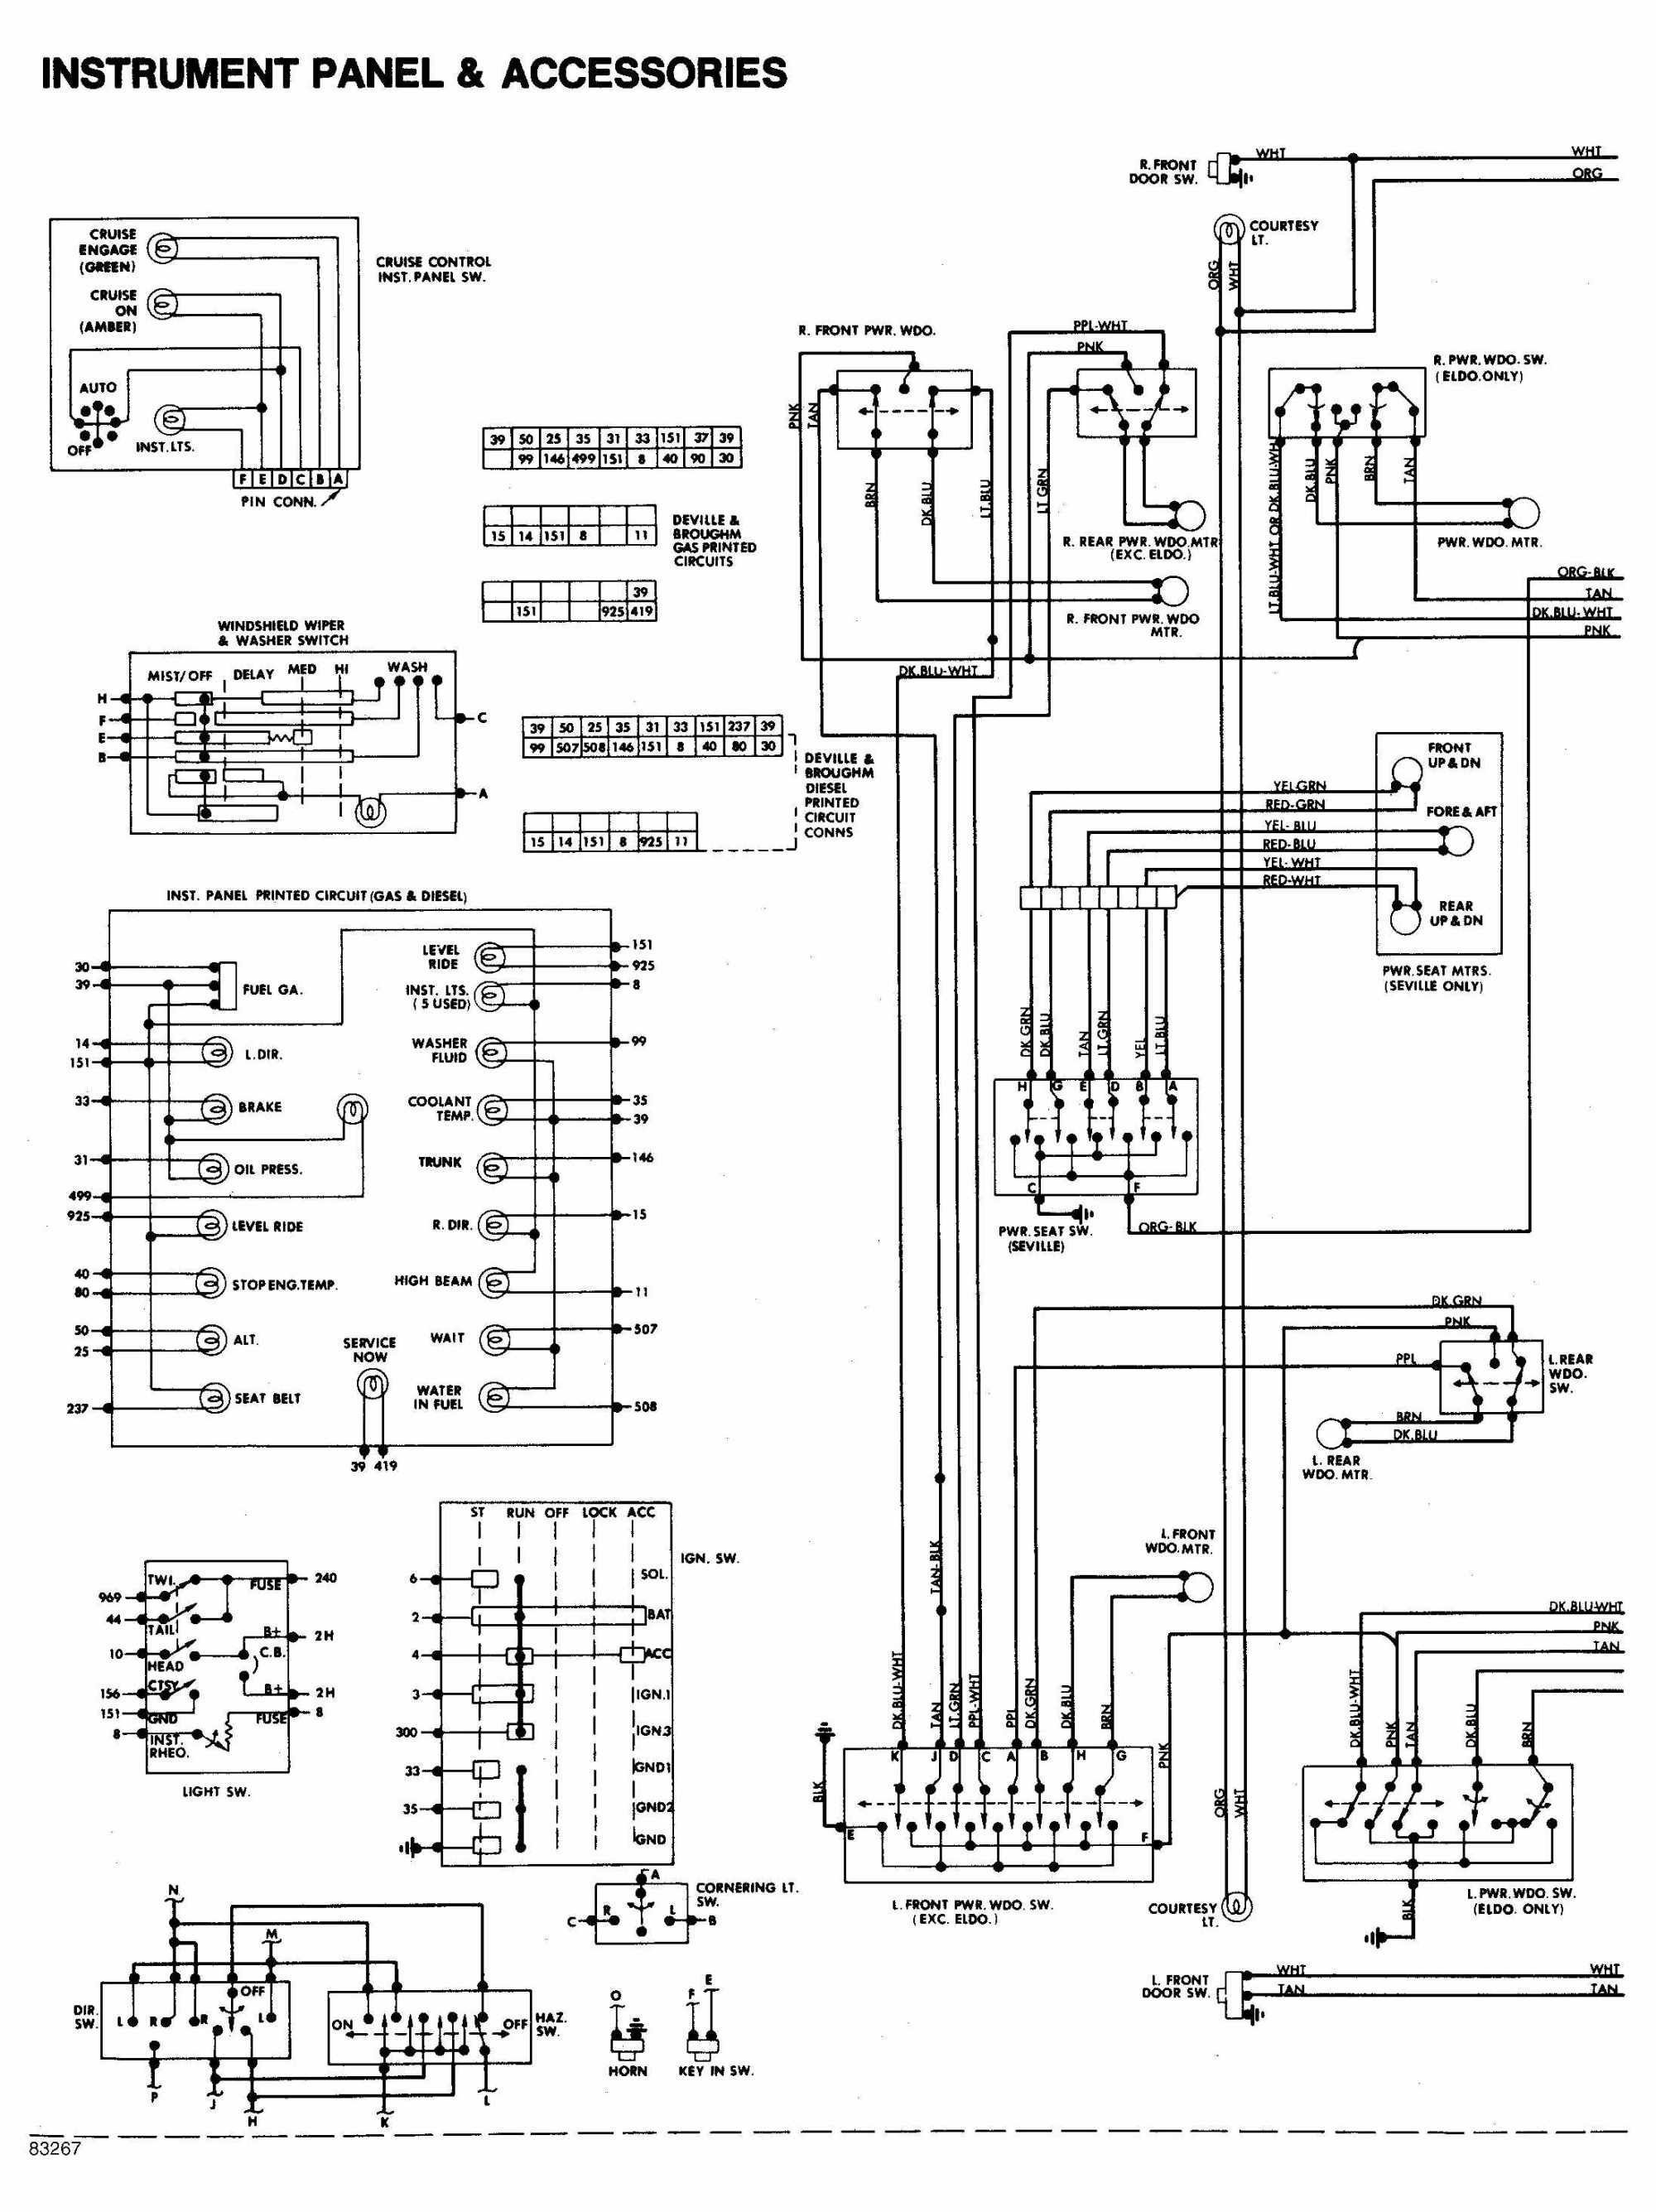 hight resolution of 1984 cadillac deville instrument panel and accessories wiring diagram drawing a